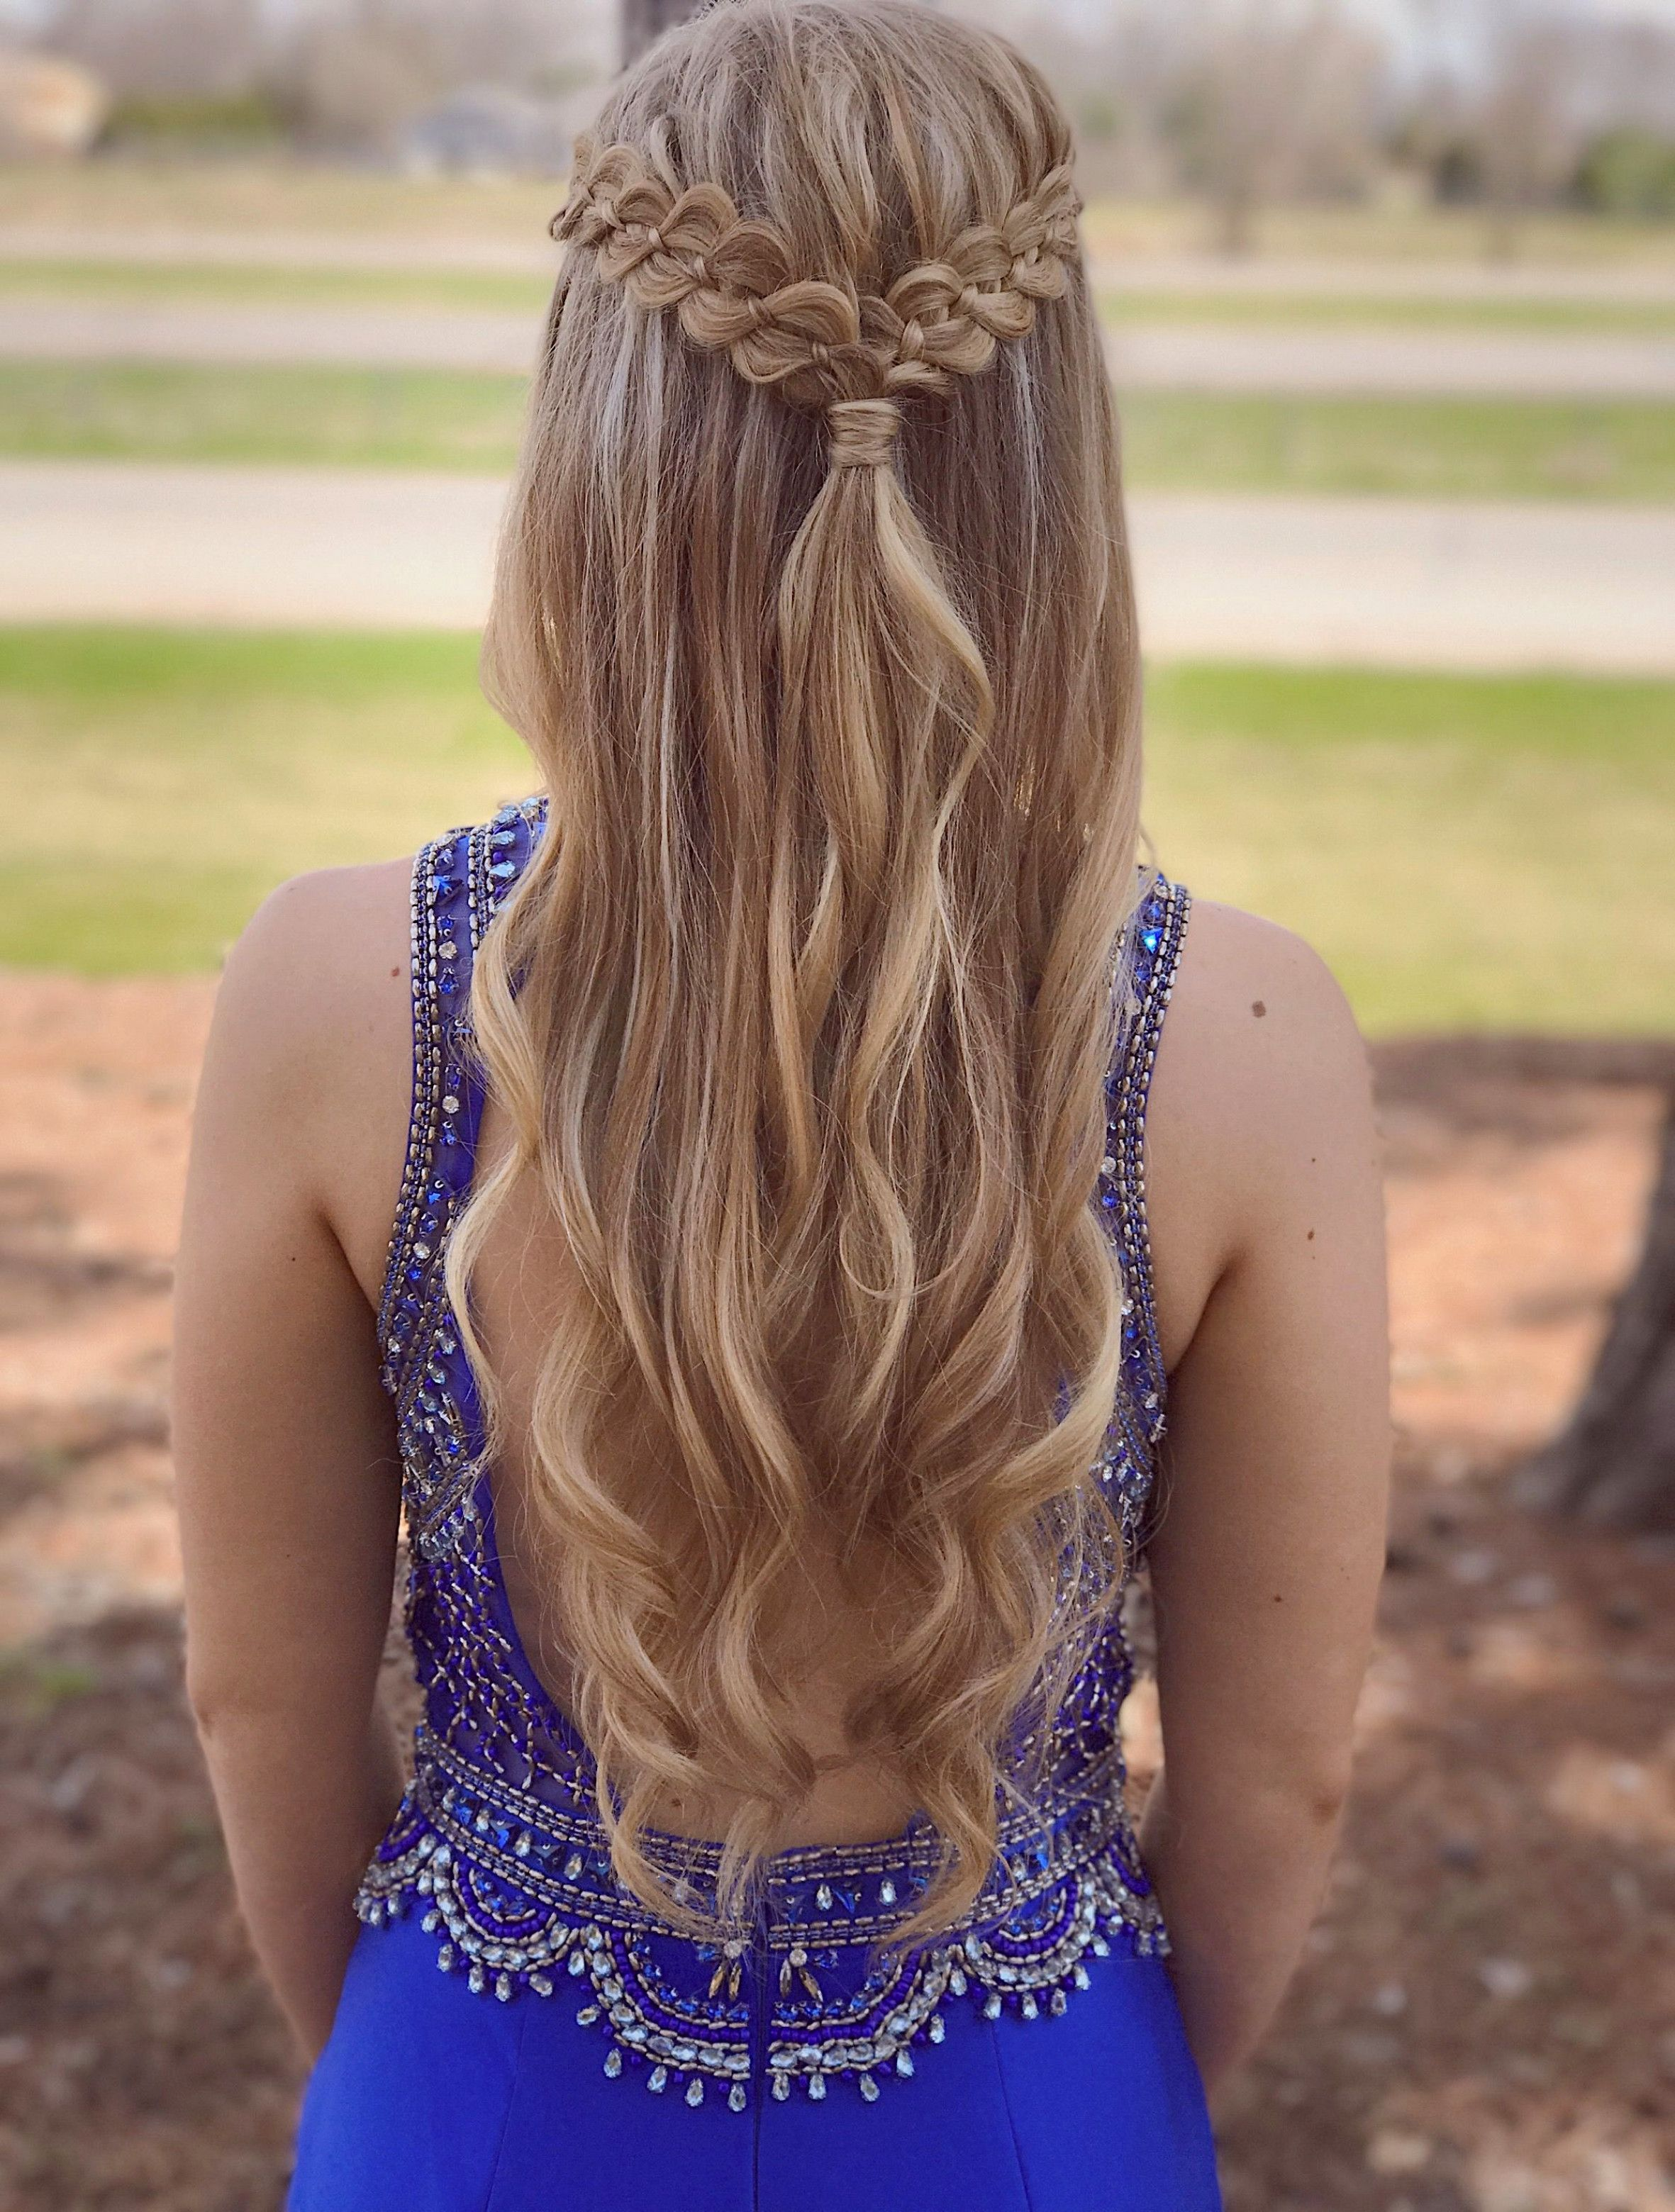 Prom Homecomingdance Dance Formal Hair Braid Prom Hair 2017